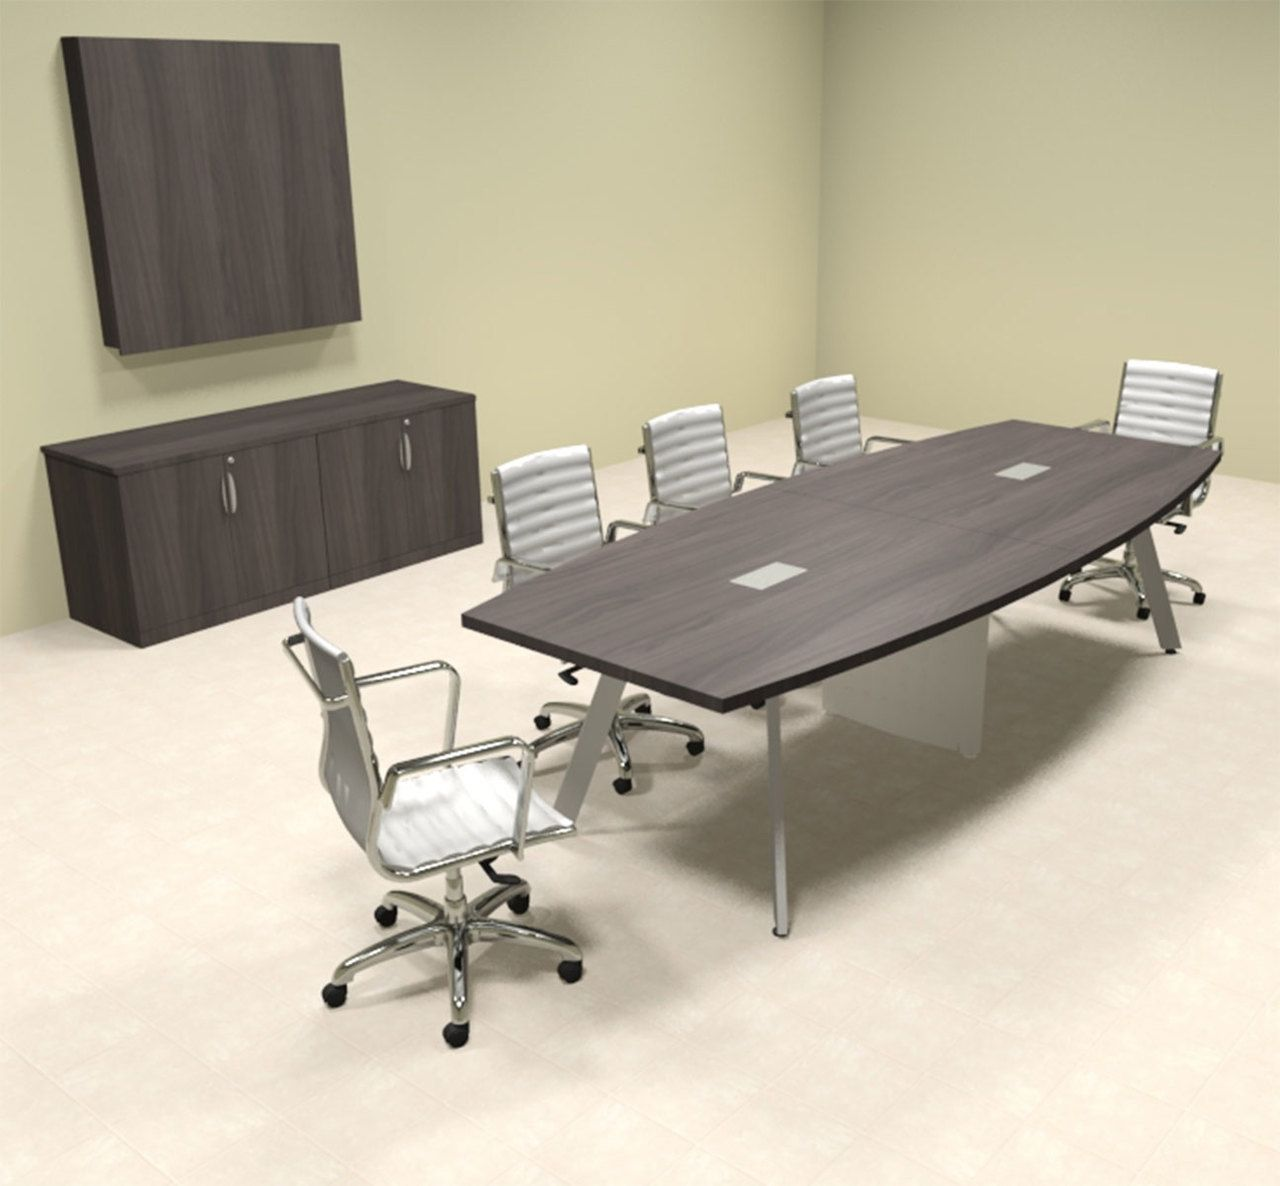 Modern Boat Shaped 10 Feet Conference Table Of Con Cv14 With Images Conference Table Table Modern Conference Table